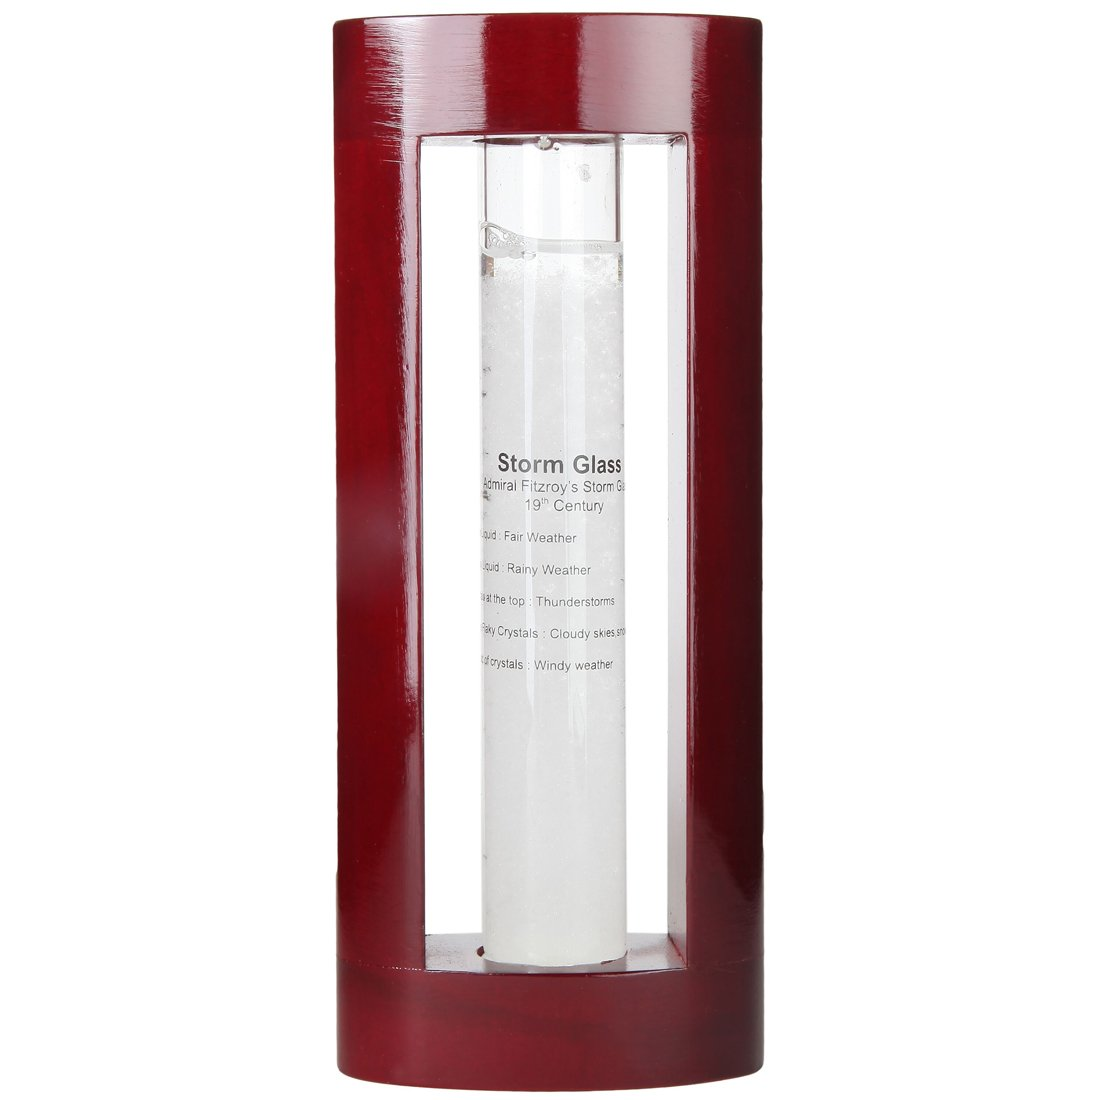 Lily's Home Admiral FitzRoy's Storm Glass Weather Prediction Station, Predicts Weather Changes and Patterns, Elegant Gift and Desktop Piece, Includes Cherry Finished Wood Frame (7'' Tall)